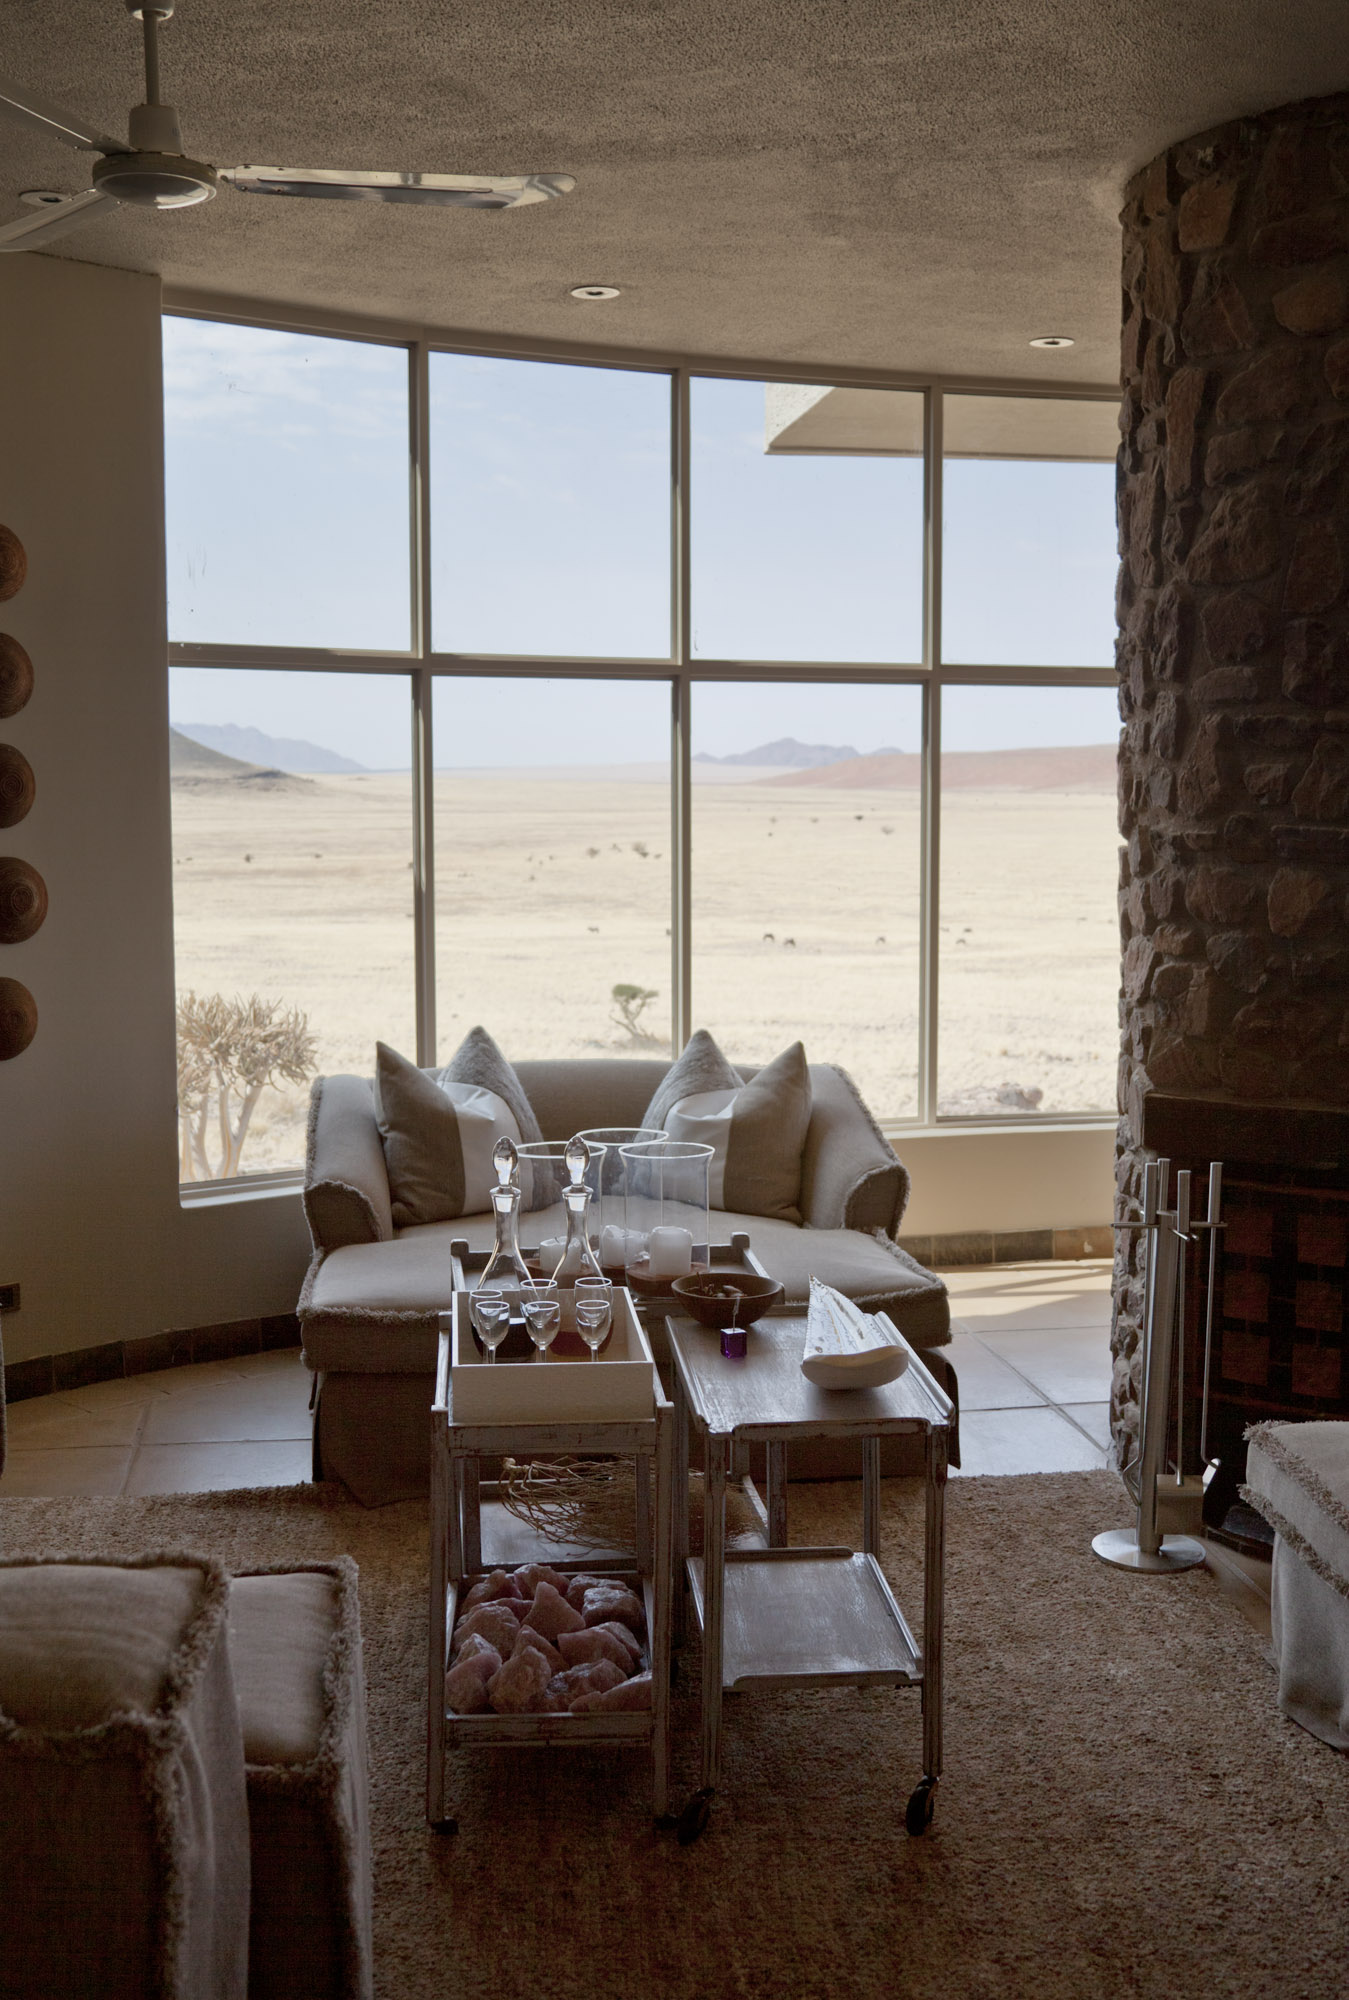 Looking toward the dunes from the lounge